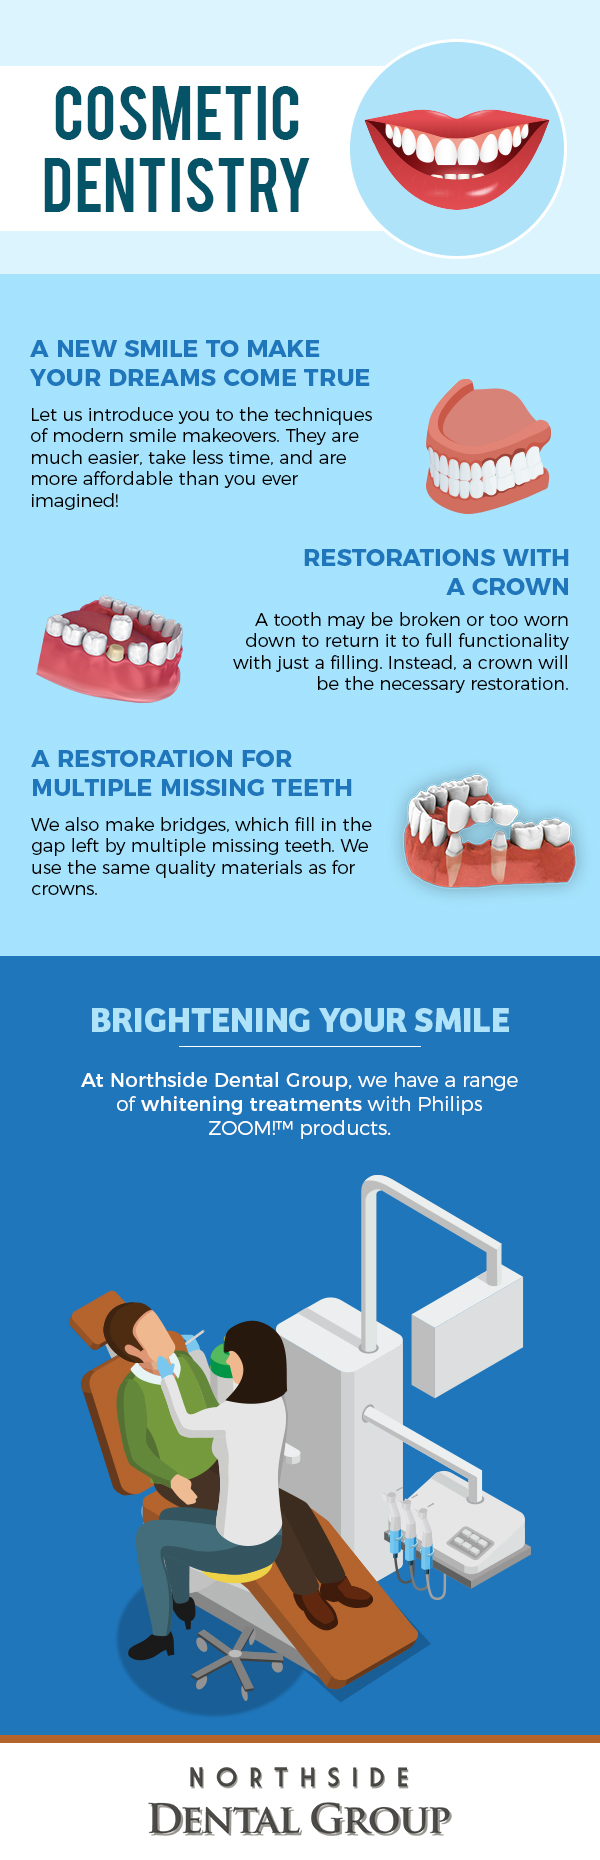 Contact Northside Dental Group for Modern Smile Makeovers with Cosmetic Dentistry